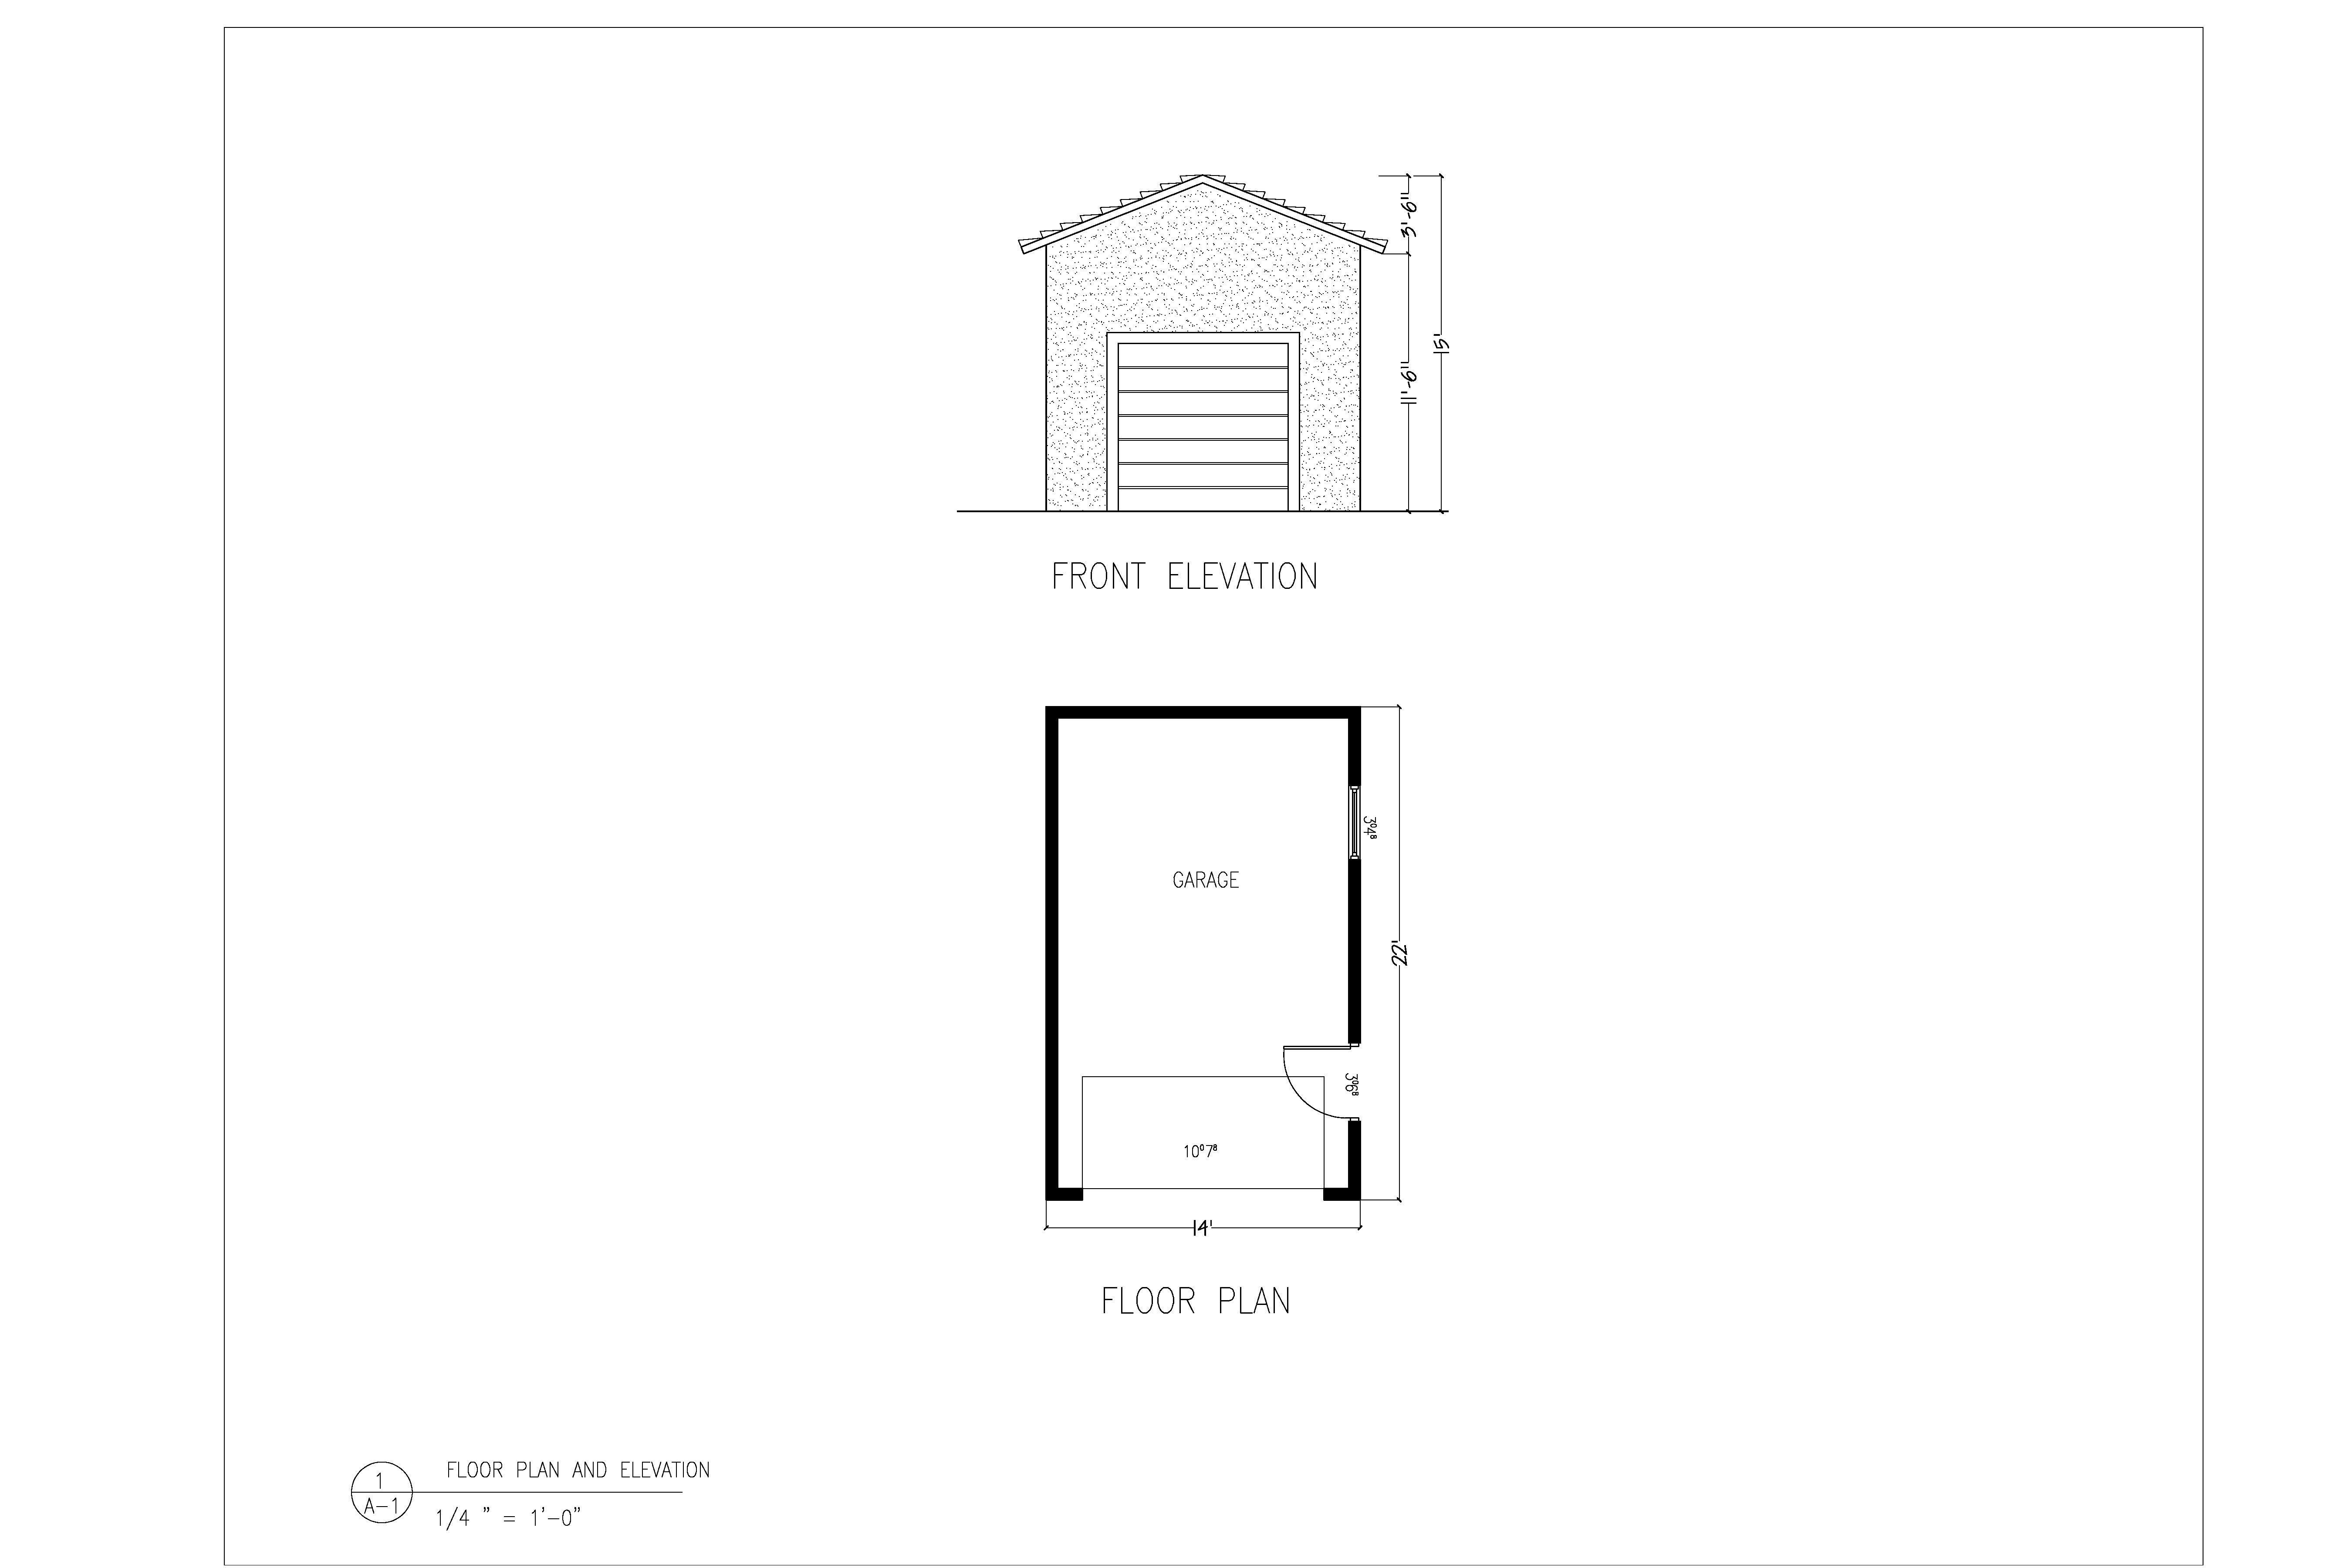 Elevation Plan Requirements : Micro coach house william edward summers